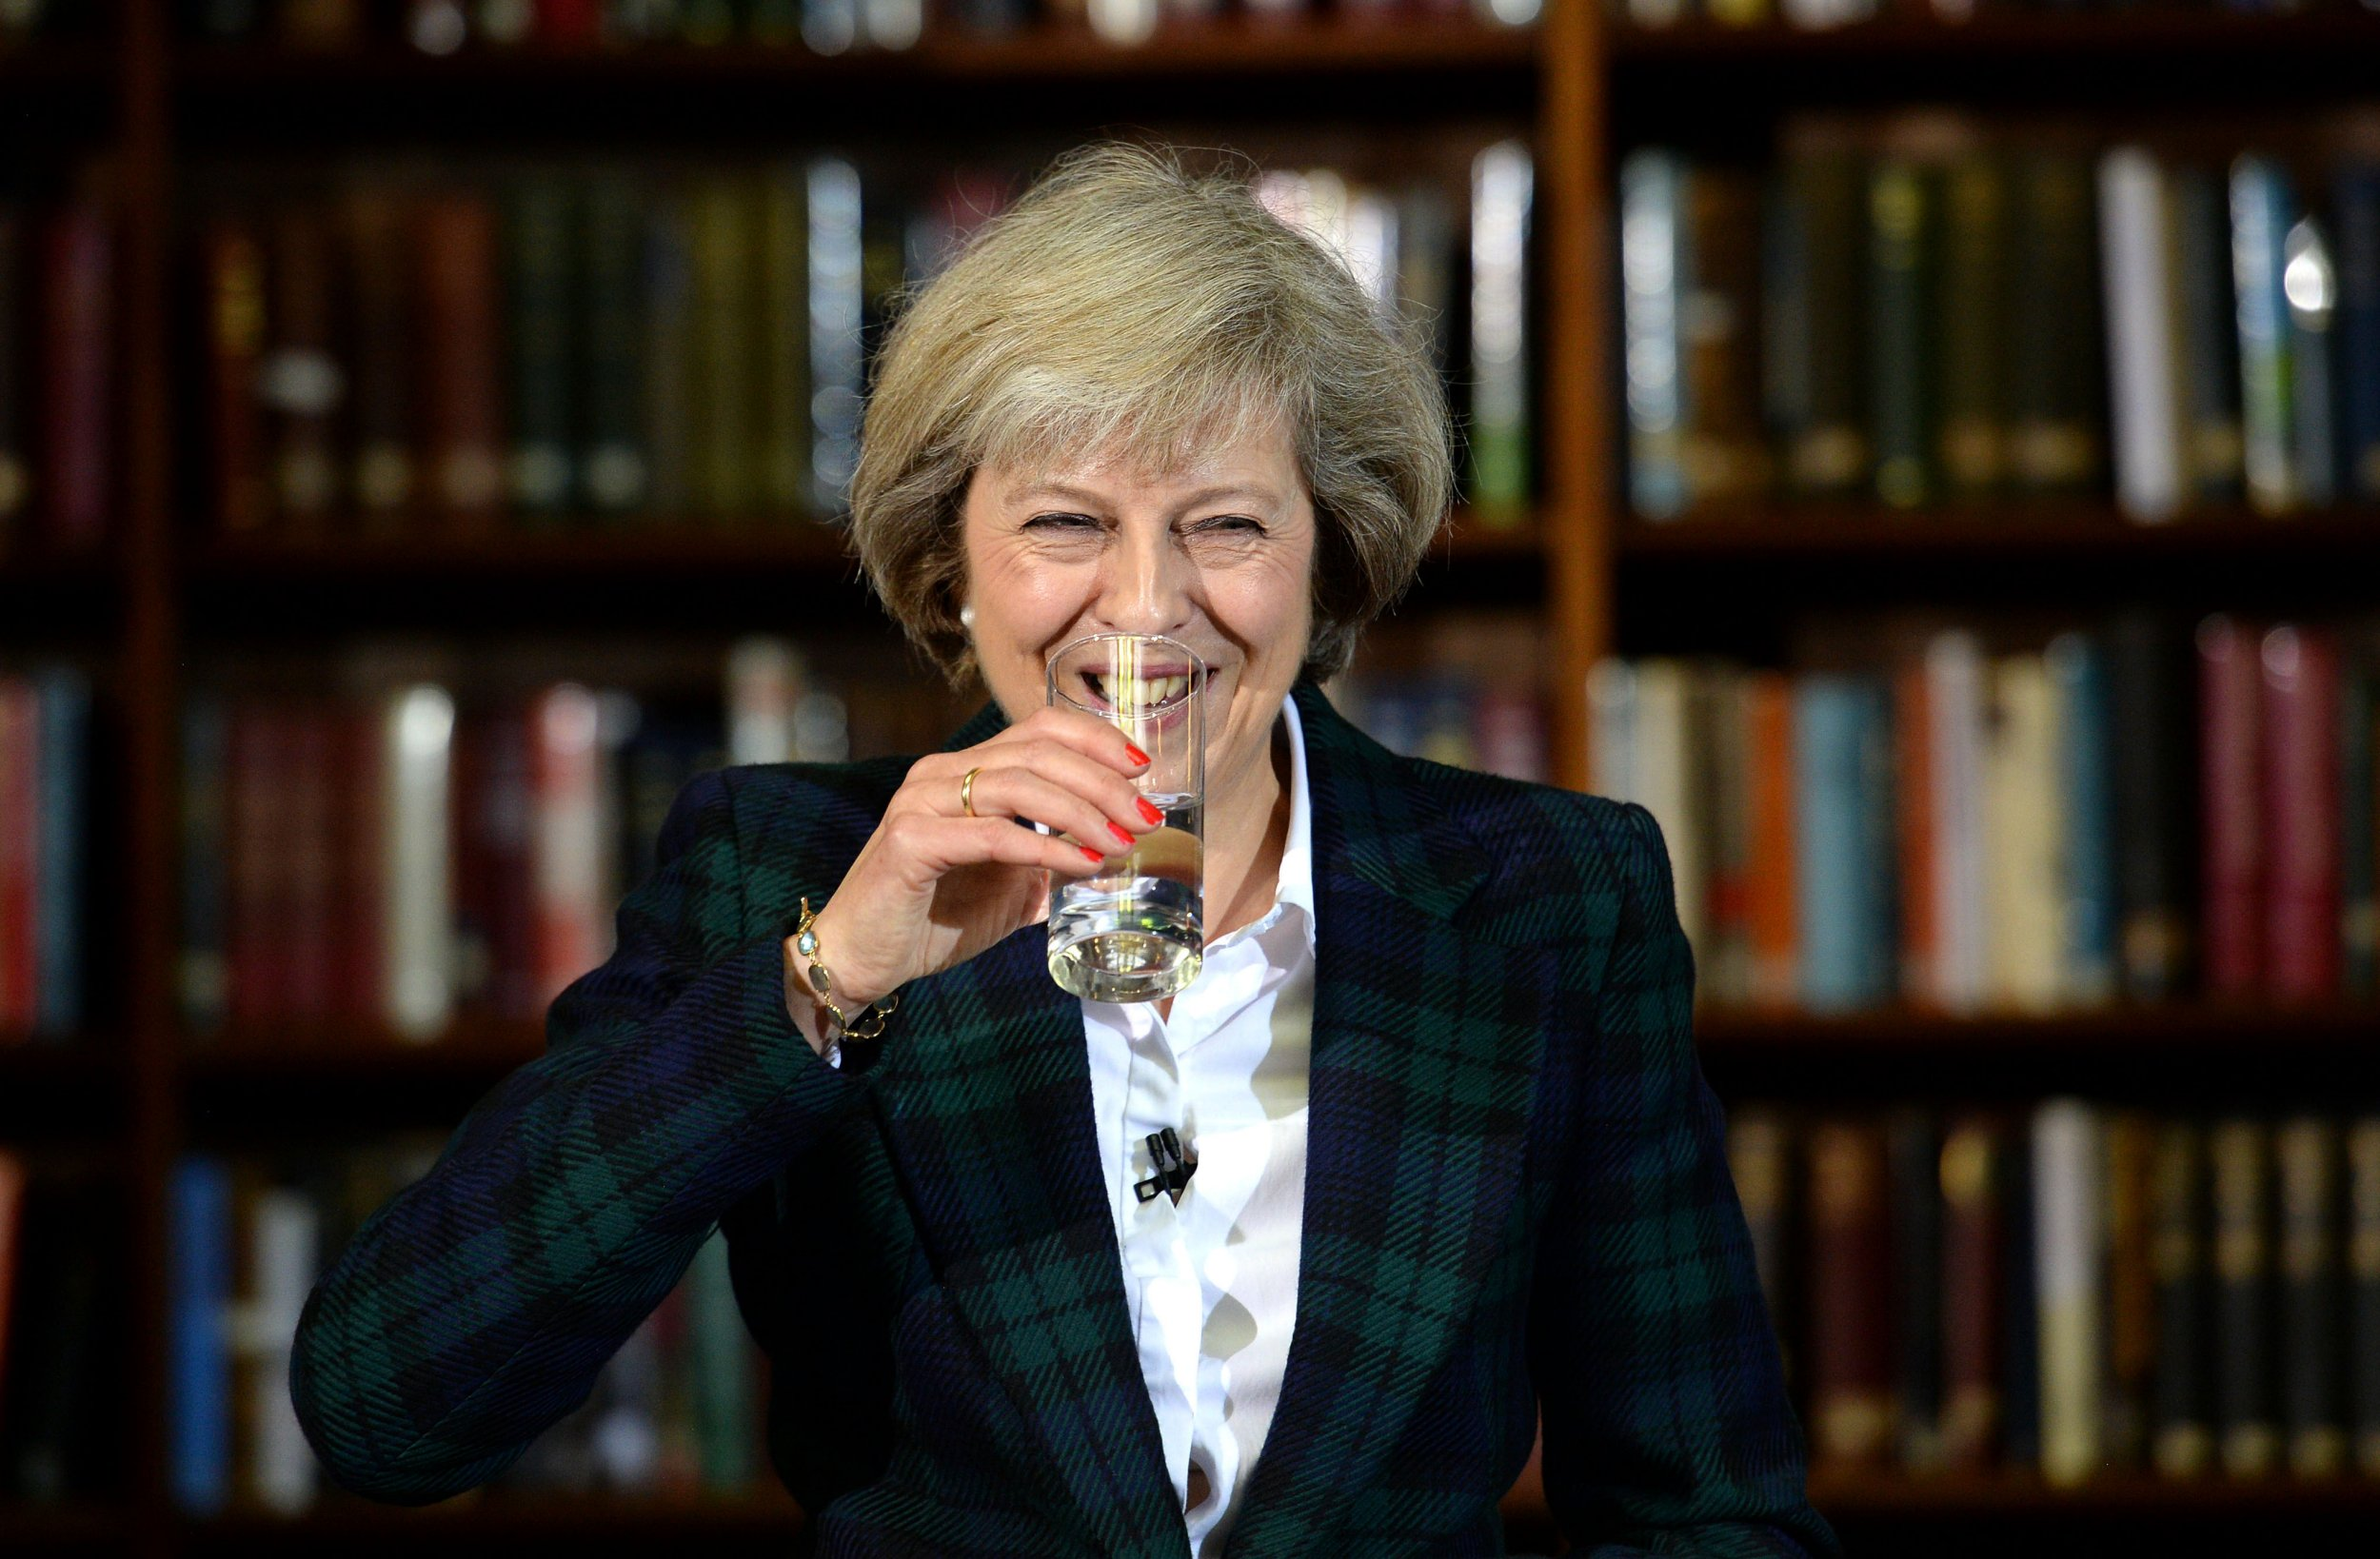 File photo dated 30/06/16 of Theresa May who is racing towards victory with six in 10 Conservatives backing her to replace David Cameron, polling has revealed. PRESS ASSOCIATION Photo. Issue date: Sunday July 3, 2016. See PA story POLITICS Conservatives. Photo credit should read: Stefan Rousseau/PA Wire